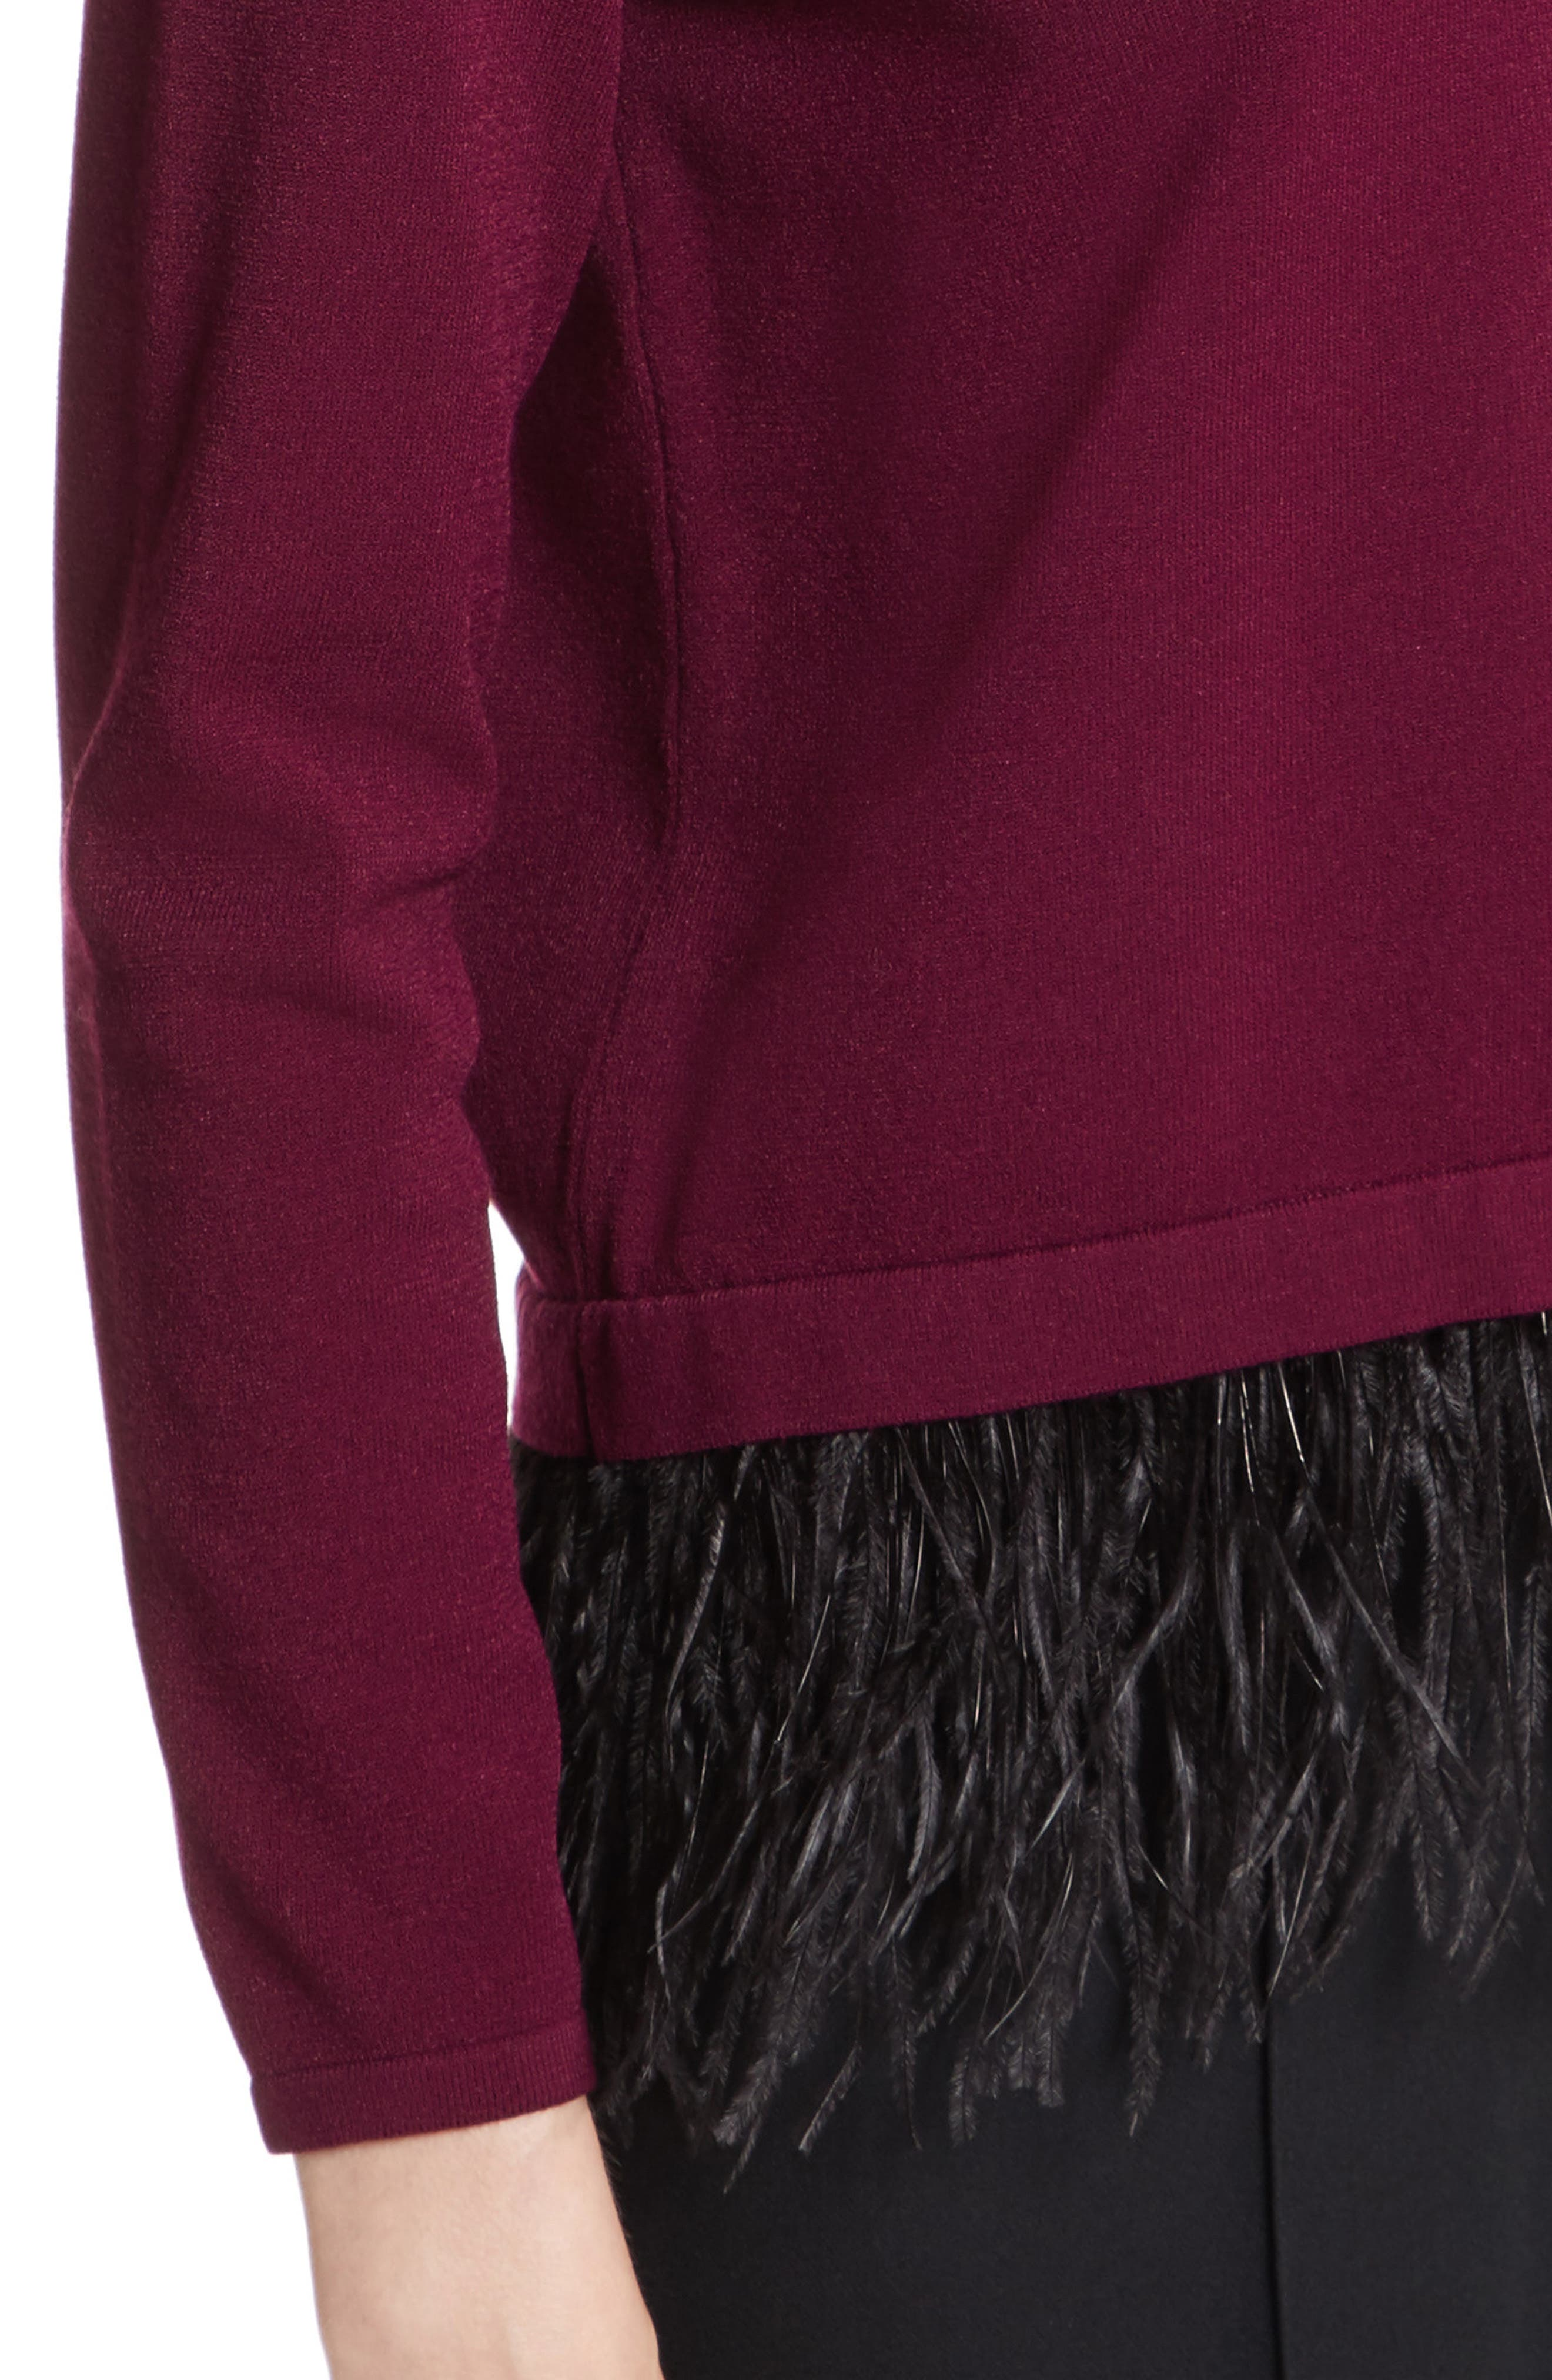 Feather Trim Sweater,                             Alternate thumbnail 4, color,                             931